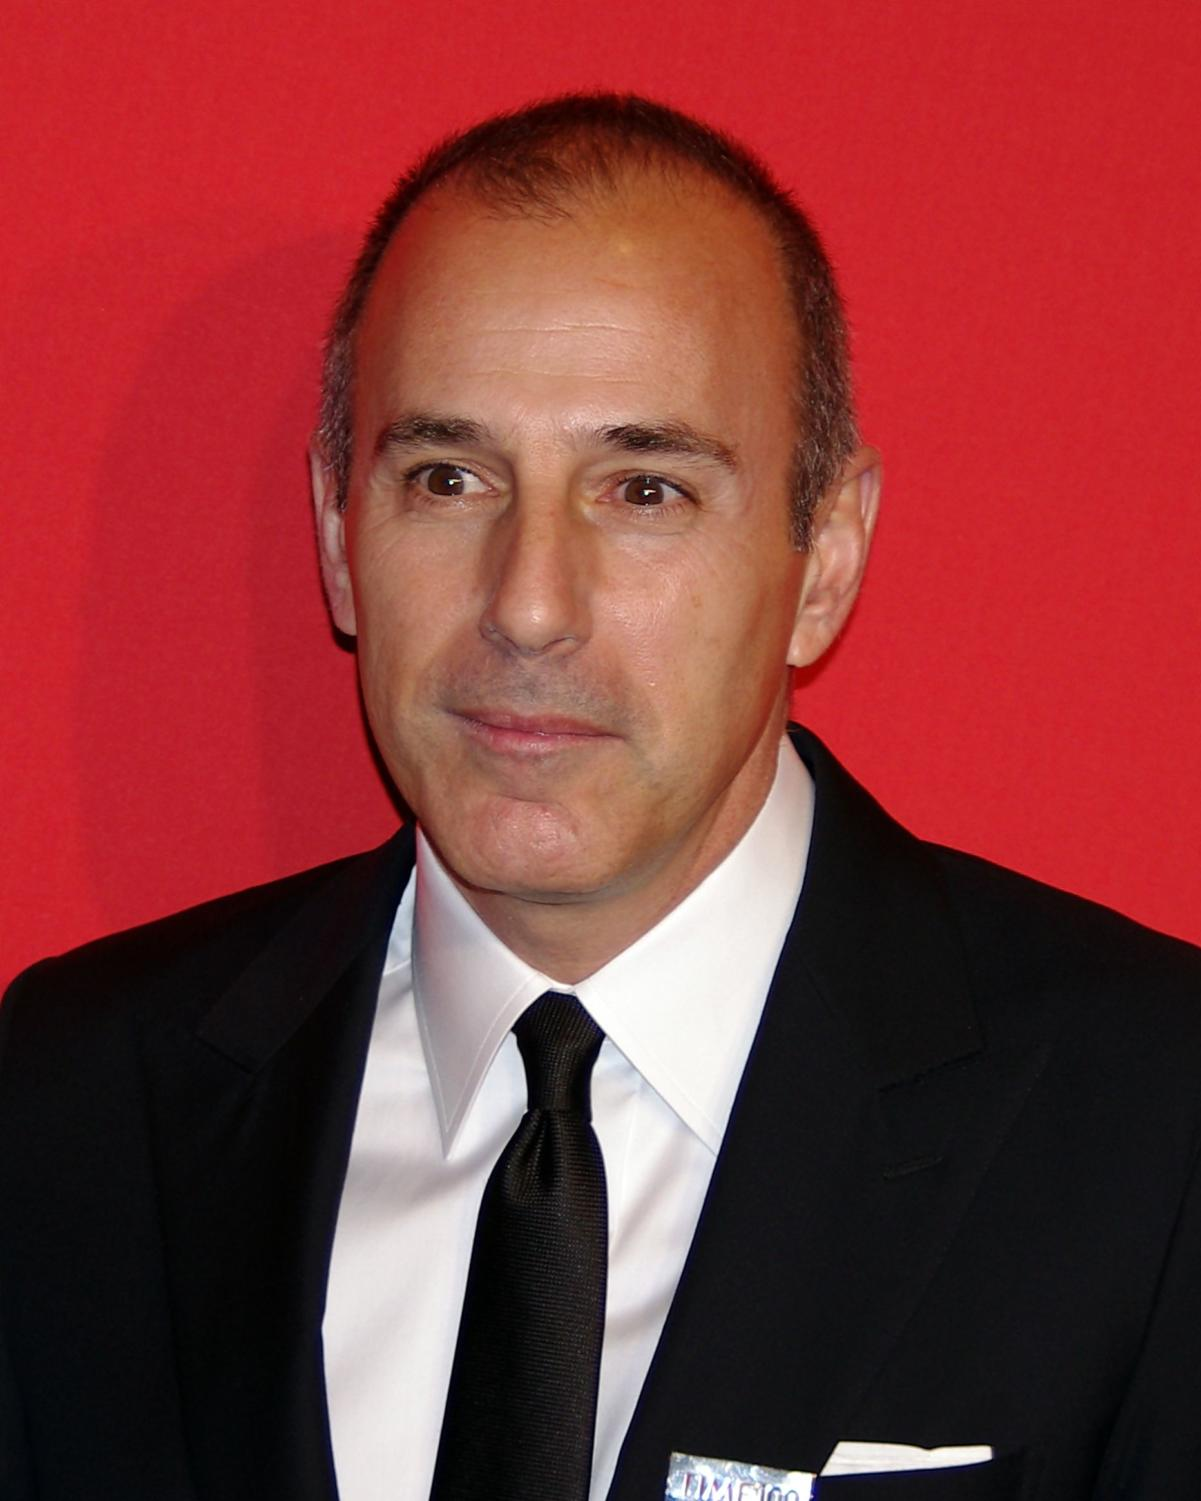 Matt Lauer is seen by many these days as an example of how even the most highly respected figures in show business are not immune to abuse of power.